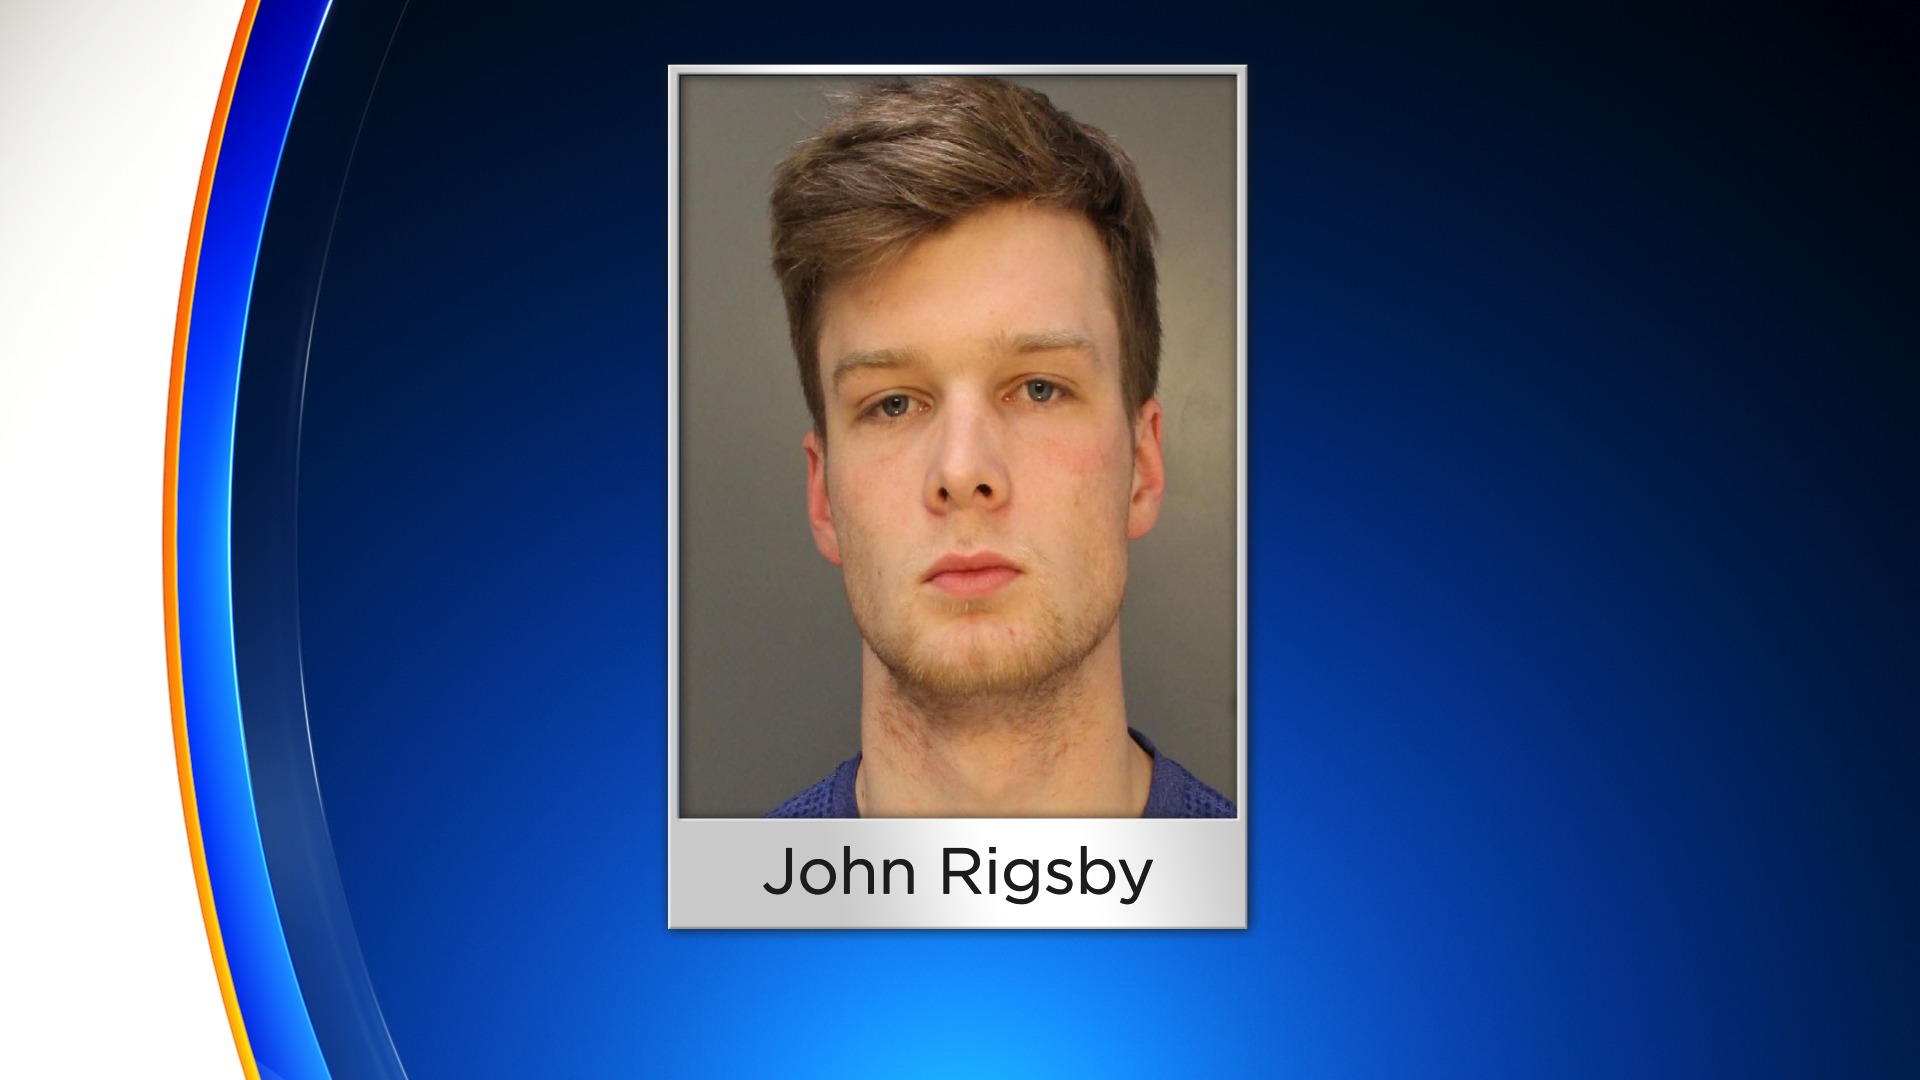 John Rigsby Man Charged With Vandalizing Vehicle During Eagles' Super Bowl Victory